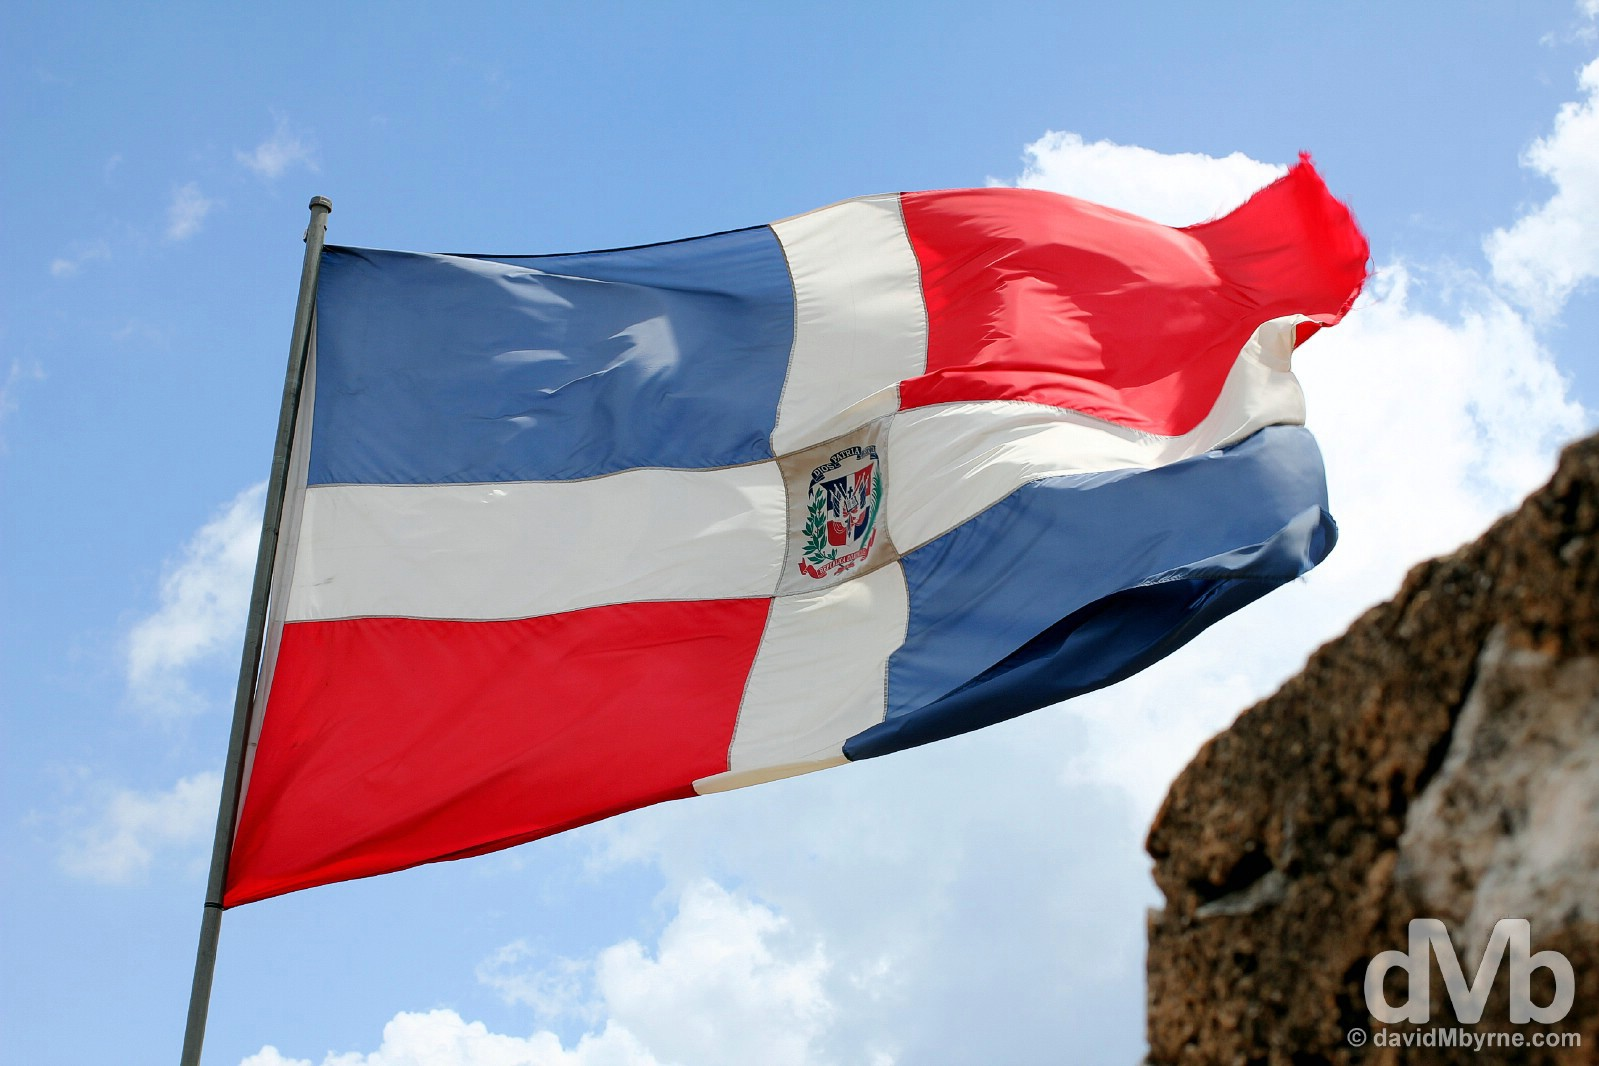 The Dominican Republic flag flying over the Torre del Homenage in Fortaleza Ozama, Santo Domingo, Dominican Republic, Hispaniola, Greater Antilles. May 26, 2015.